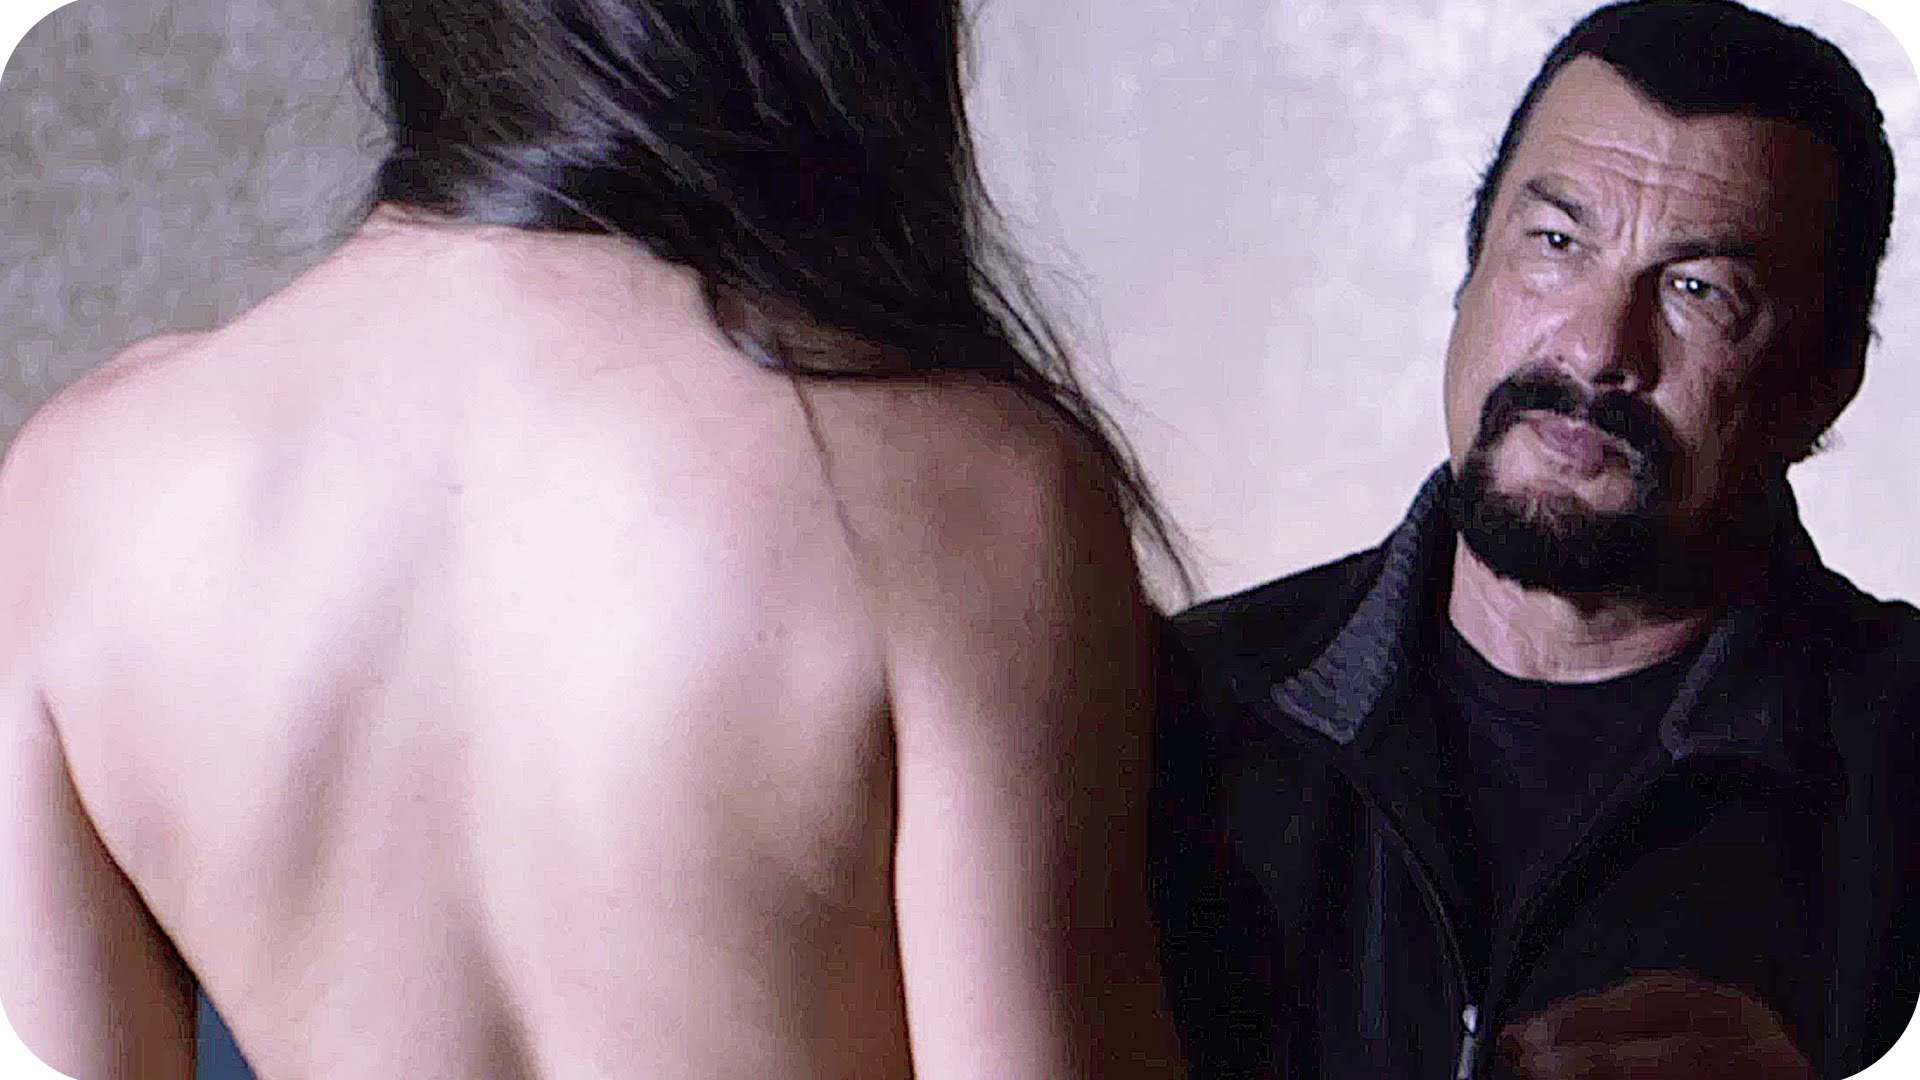 I Watched Steven Seagal Images So You Don't Have To